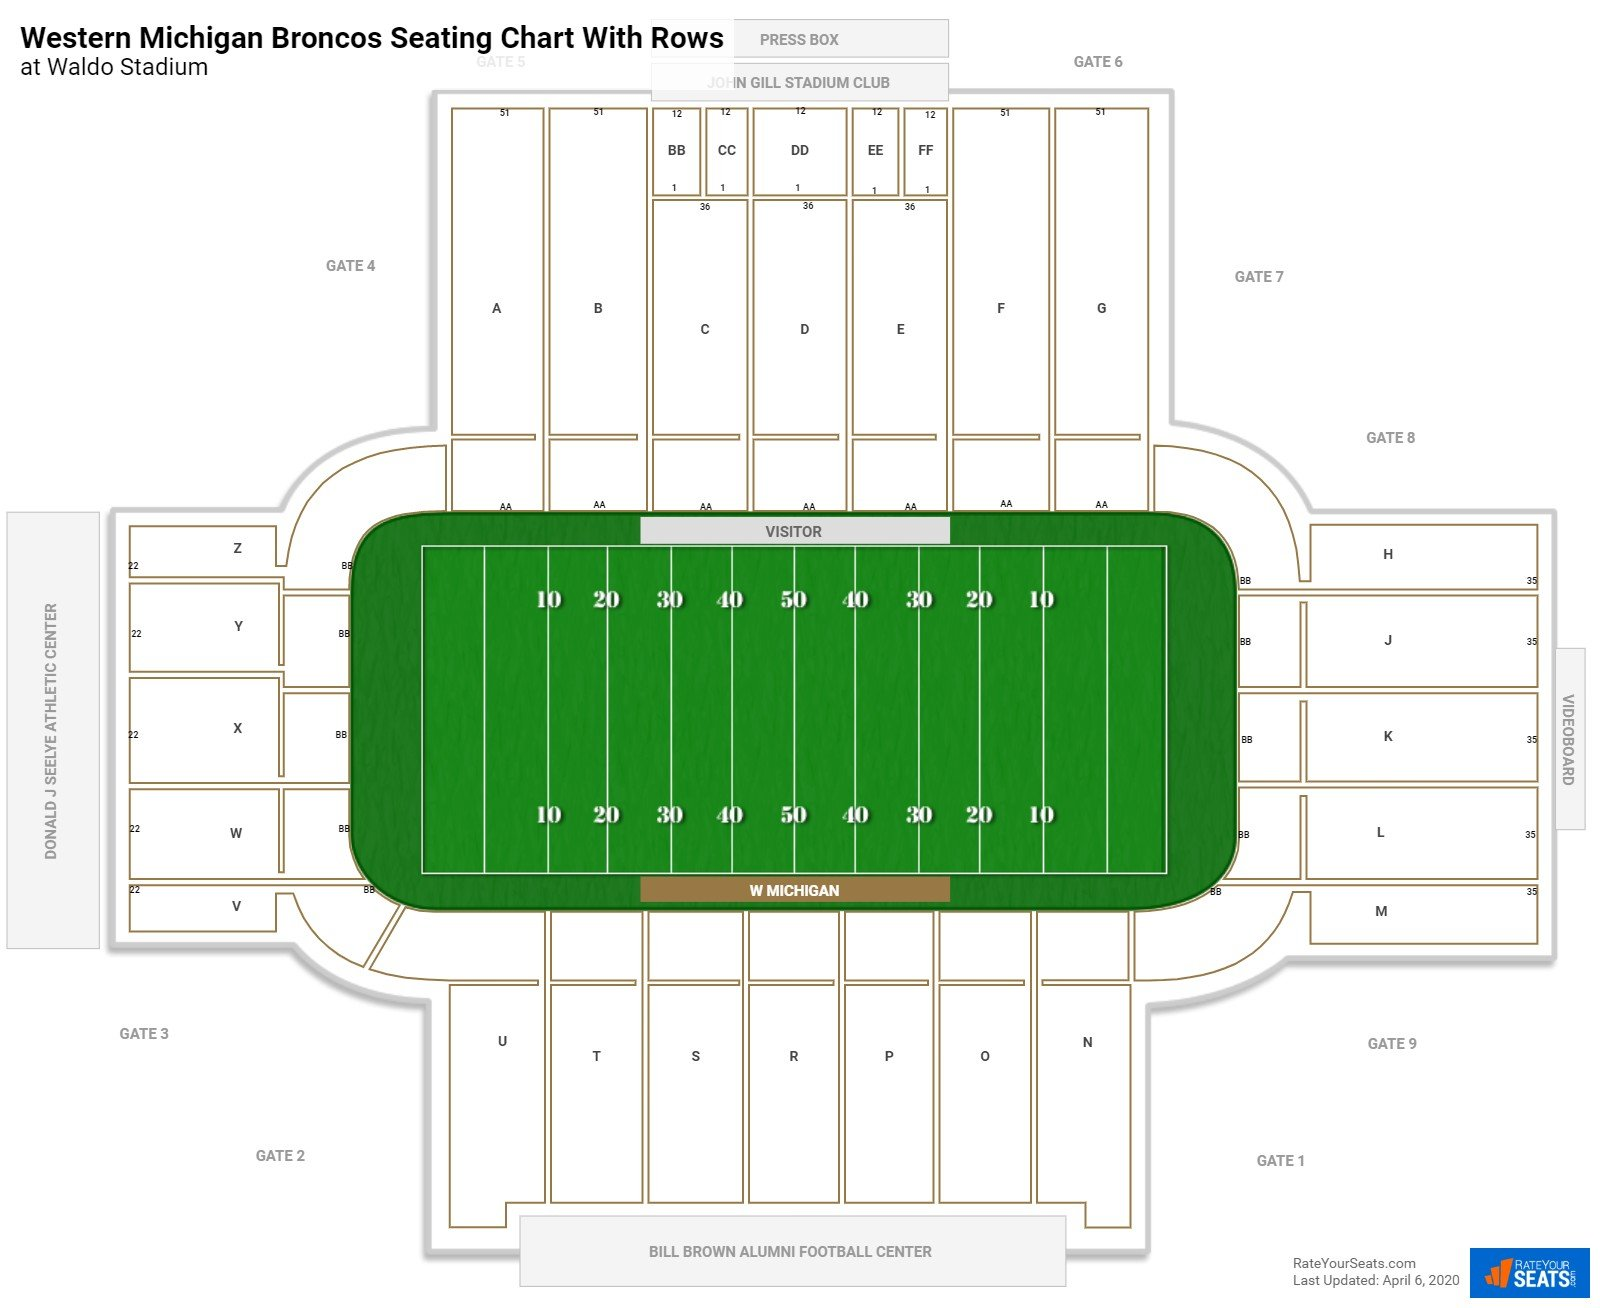 Waldo Stadium seating chart with rows